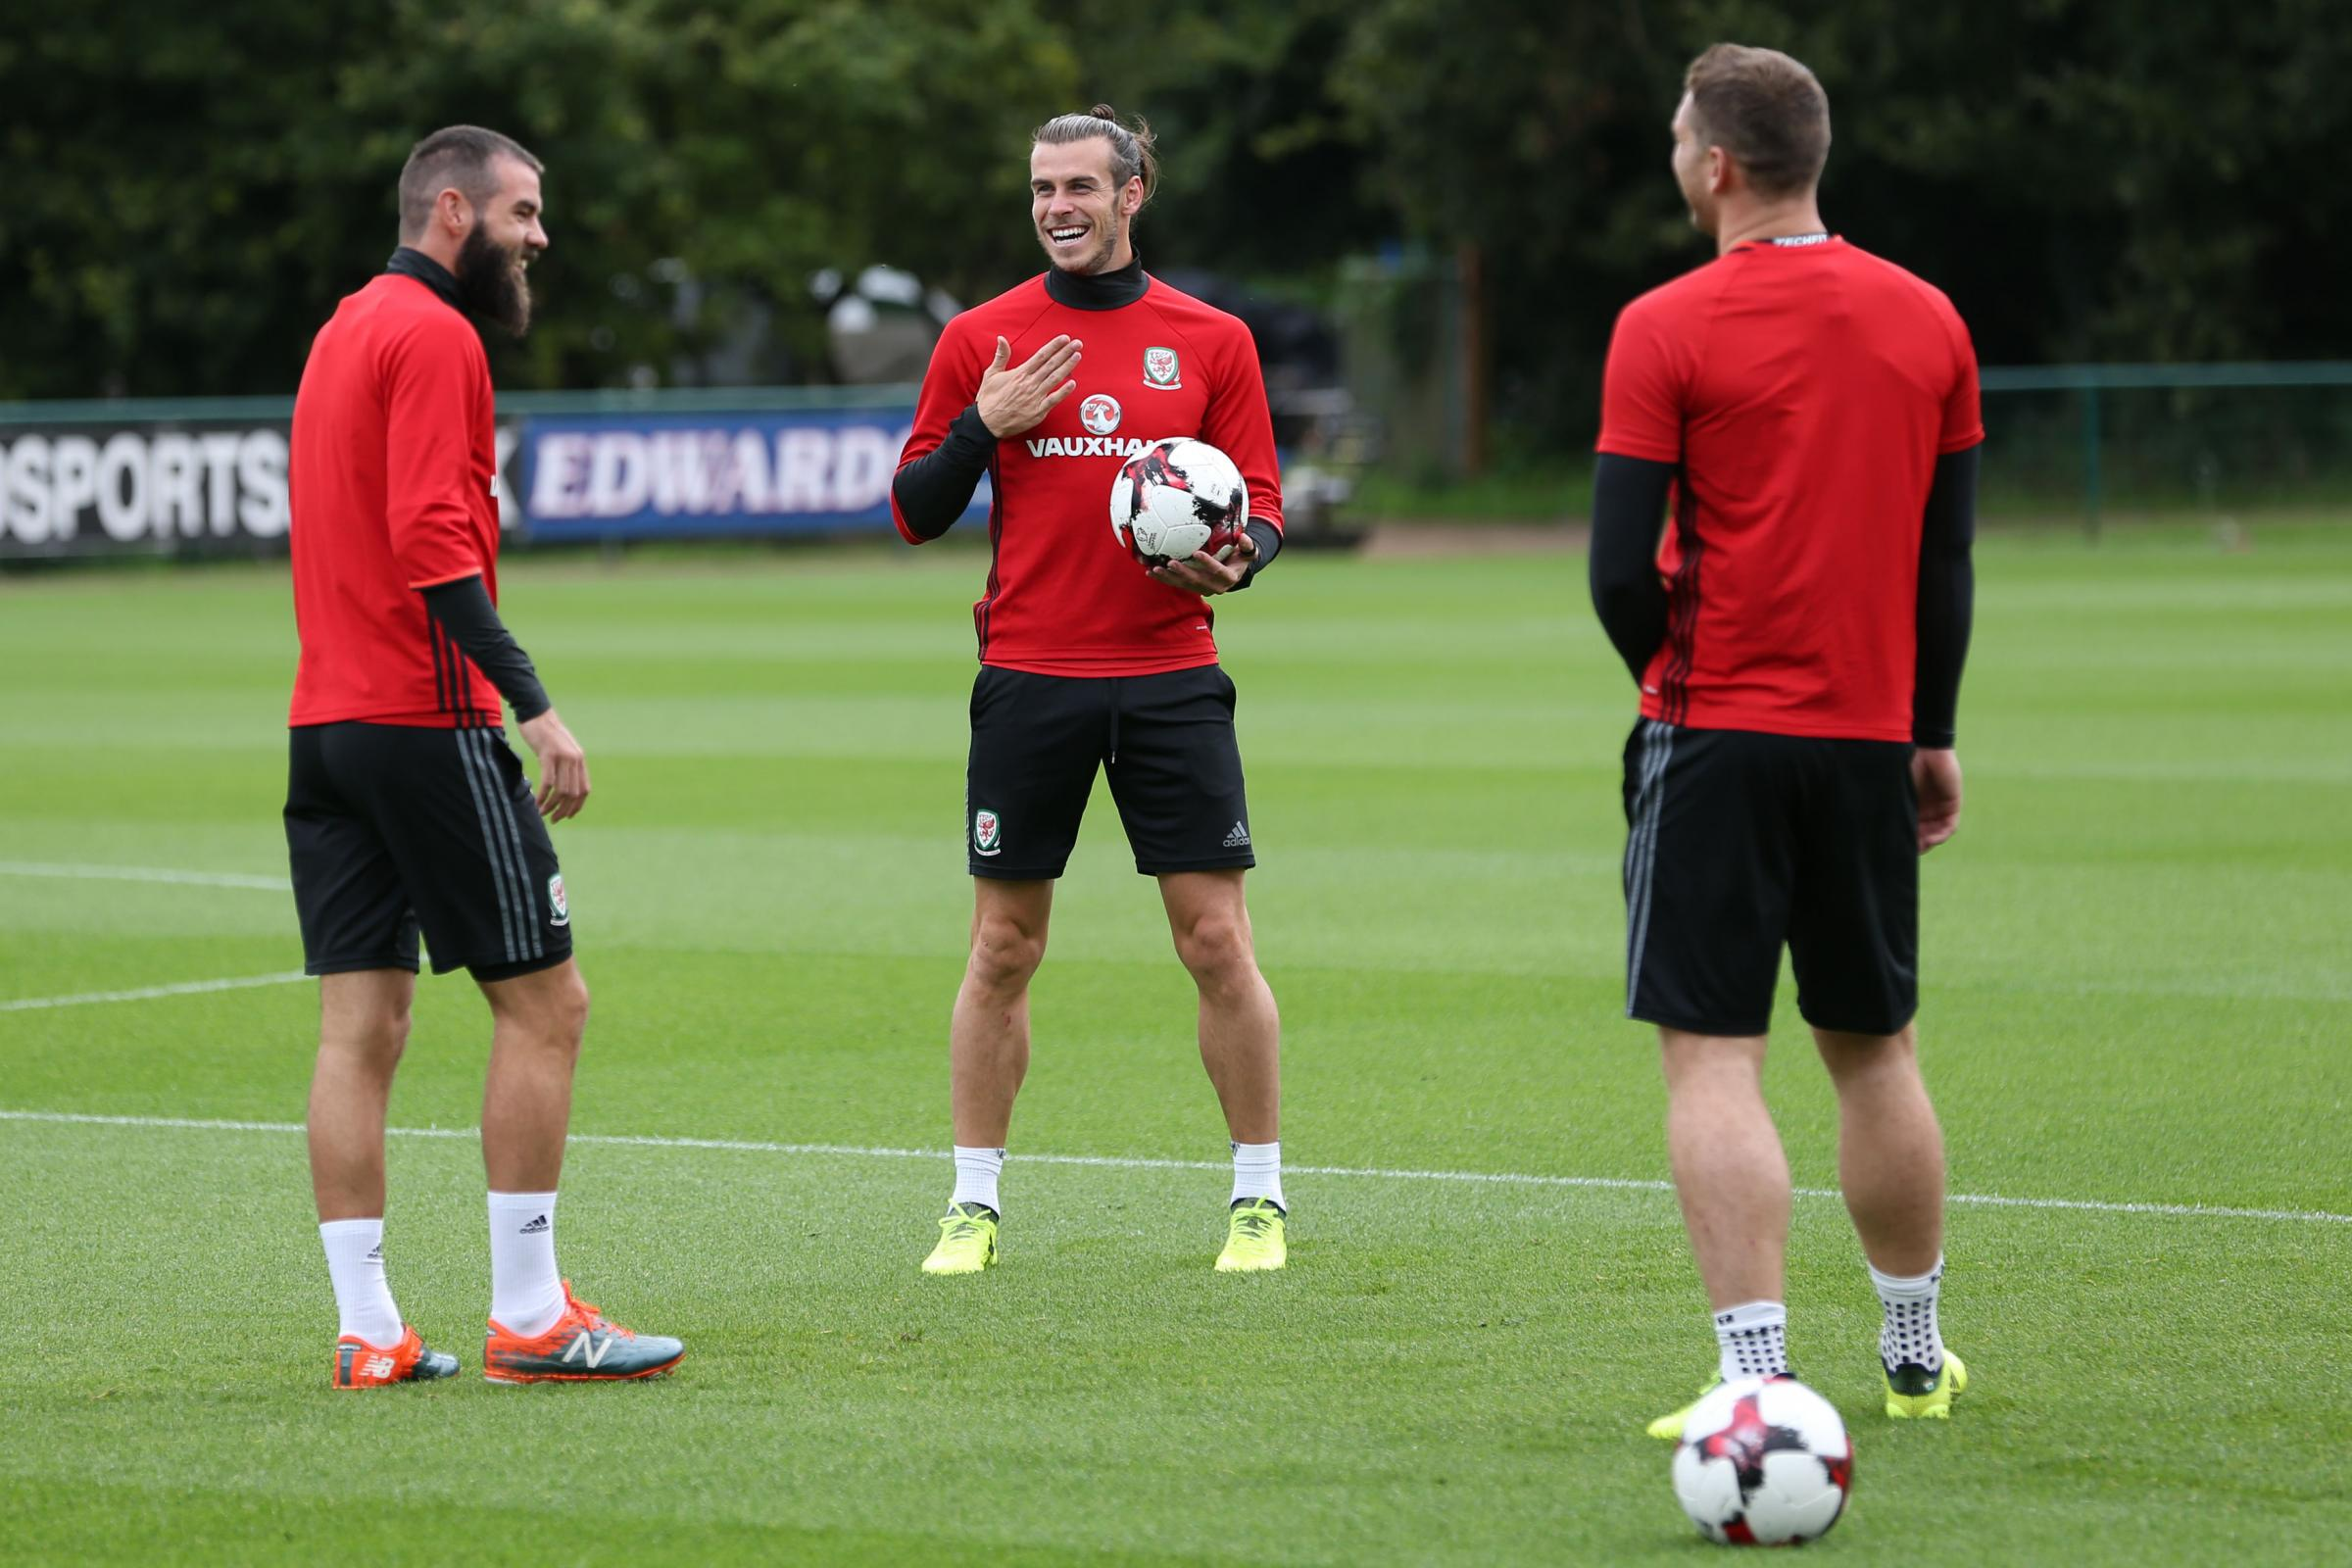 RELAXED: Gareth Bale shares a joke with Wales teammates Joe Ledley and Sam Vokes during Tuesday's training session at The Vale Resort